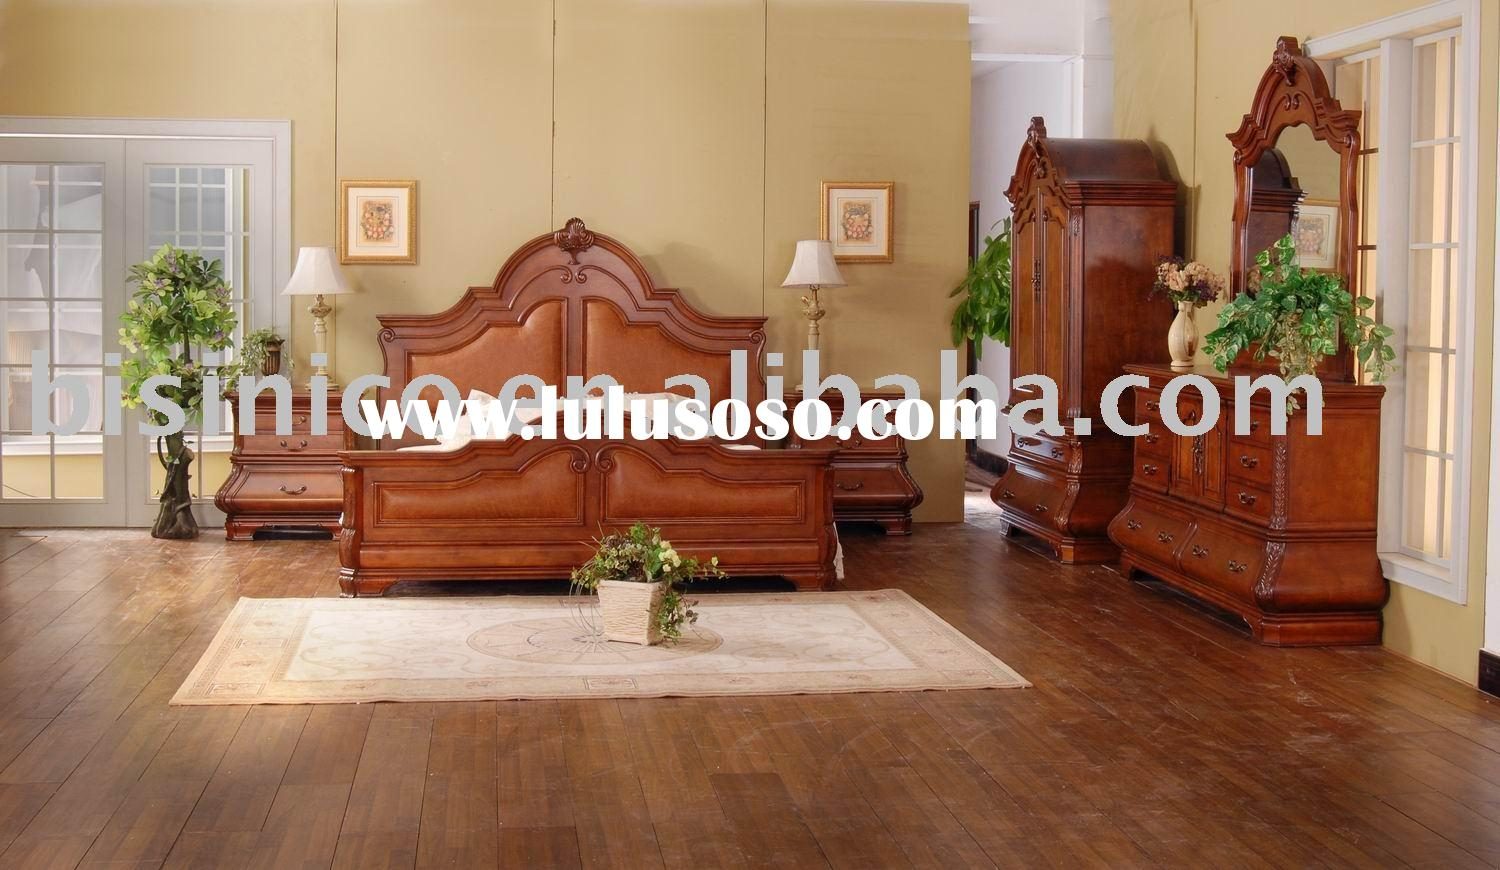 Antique bedroom furniture,bed room sets,side table,dresser,mirror,chest,TV armoire,American furnitur